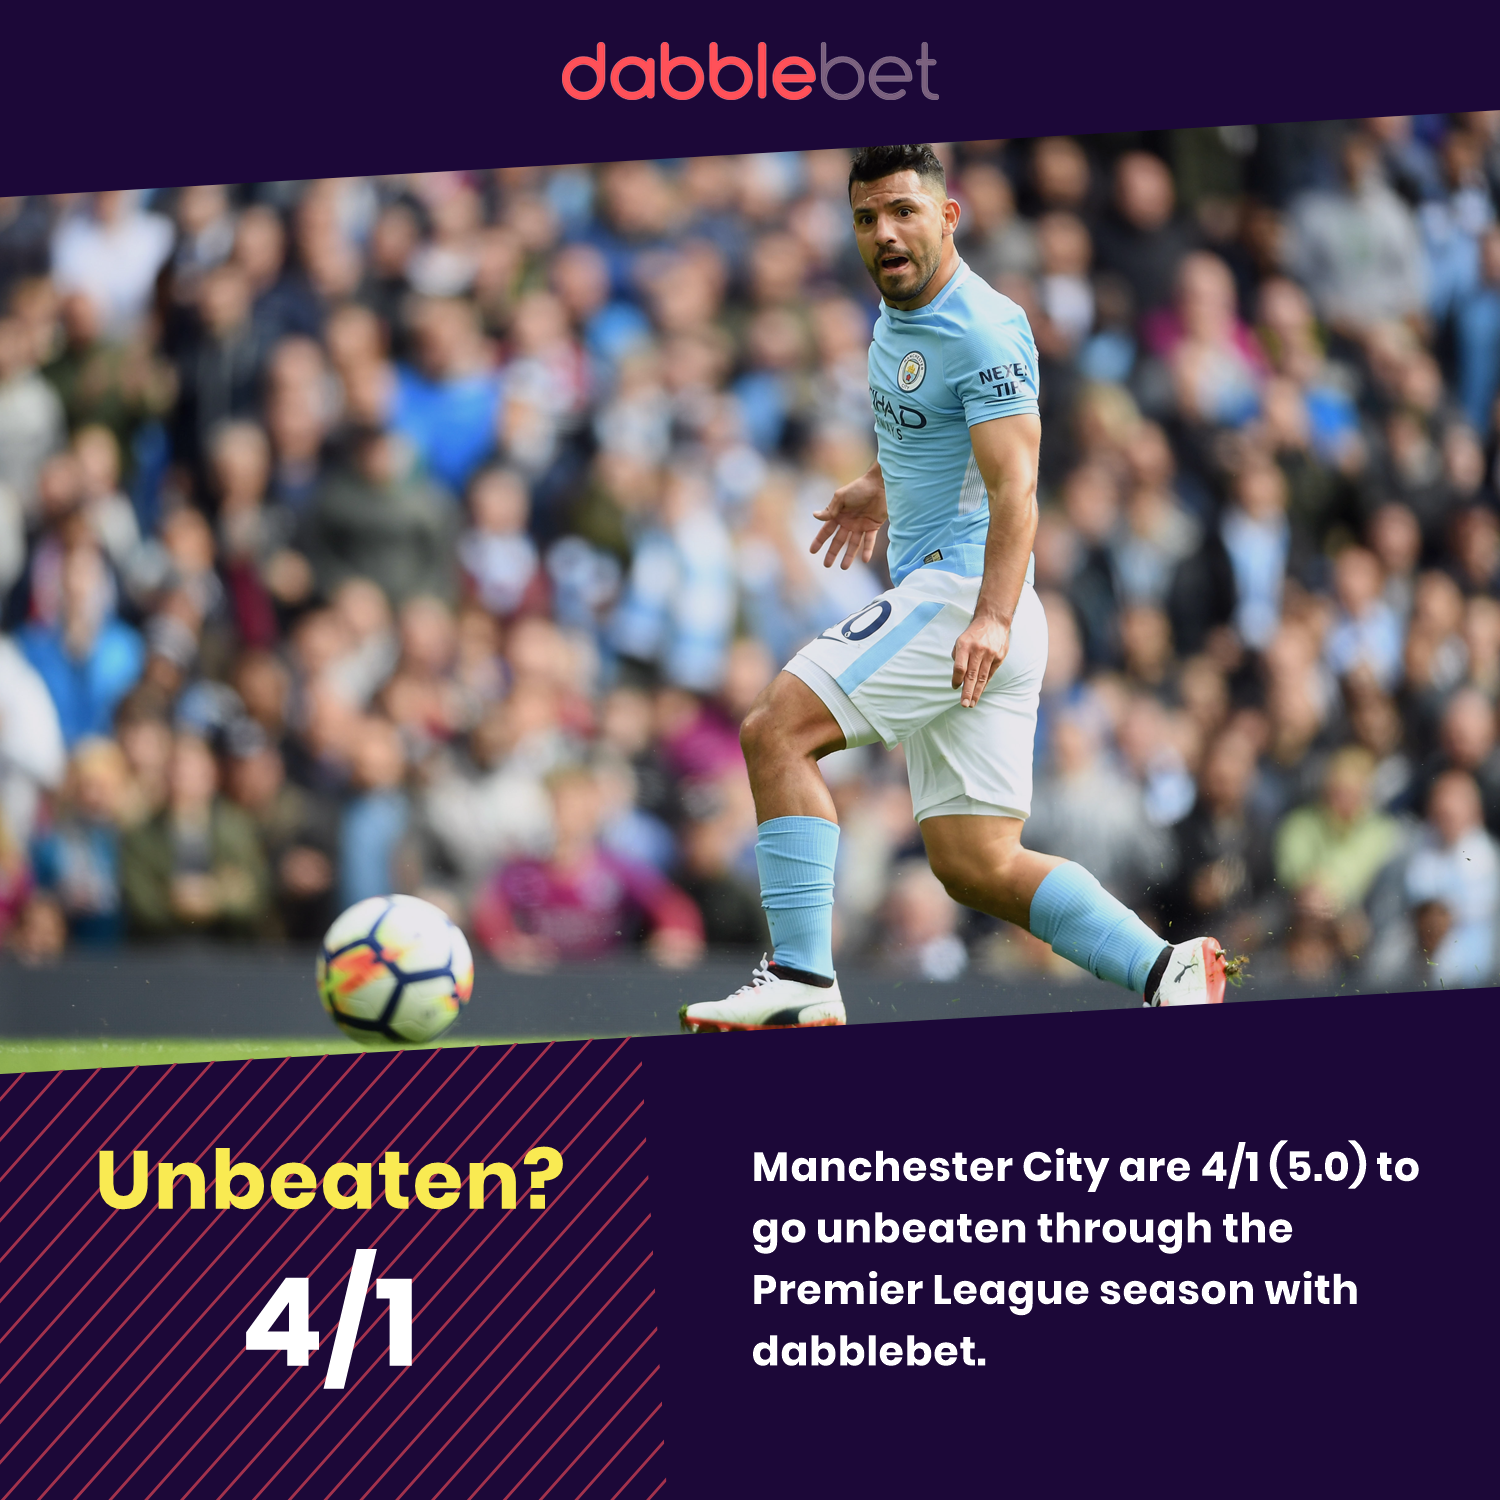 GFX FACT MAN CITY UNBEATEN SPECIAL